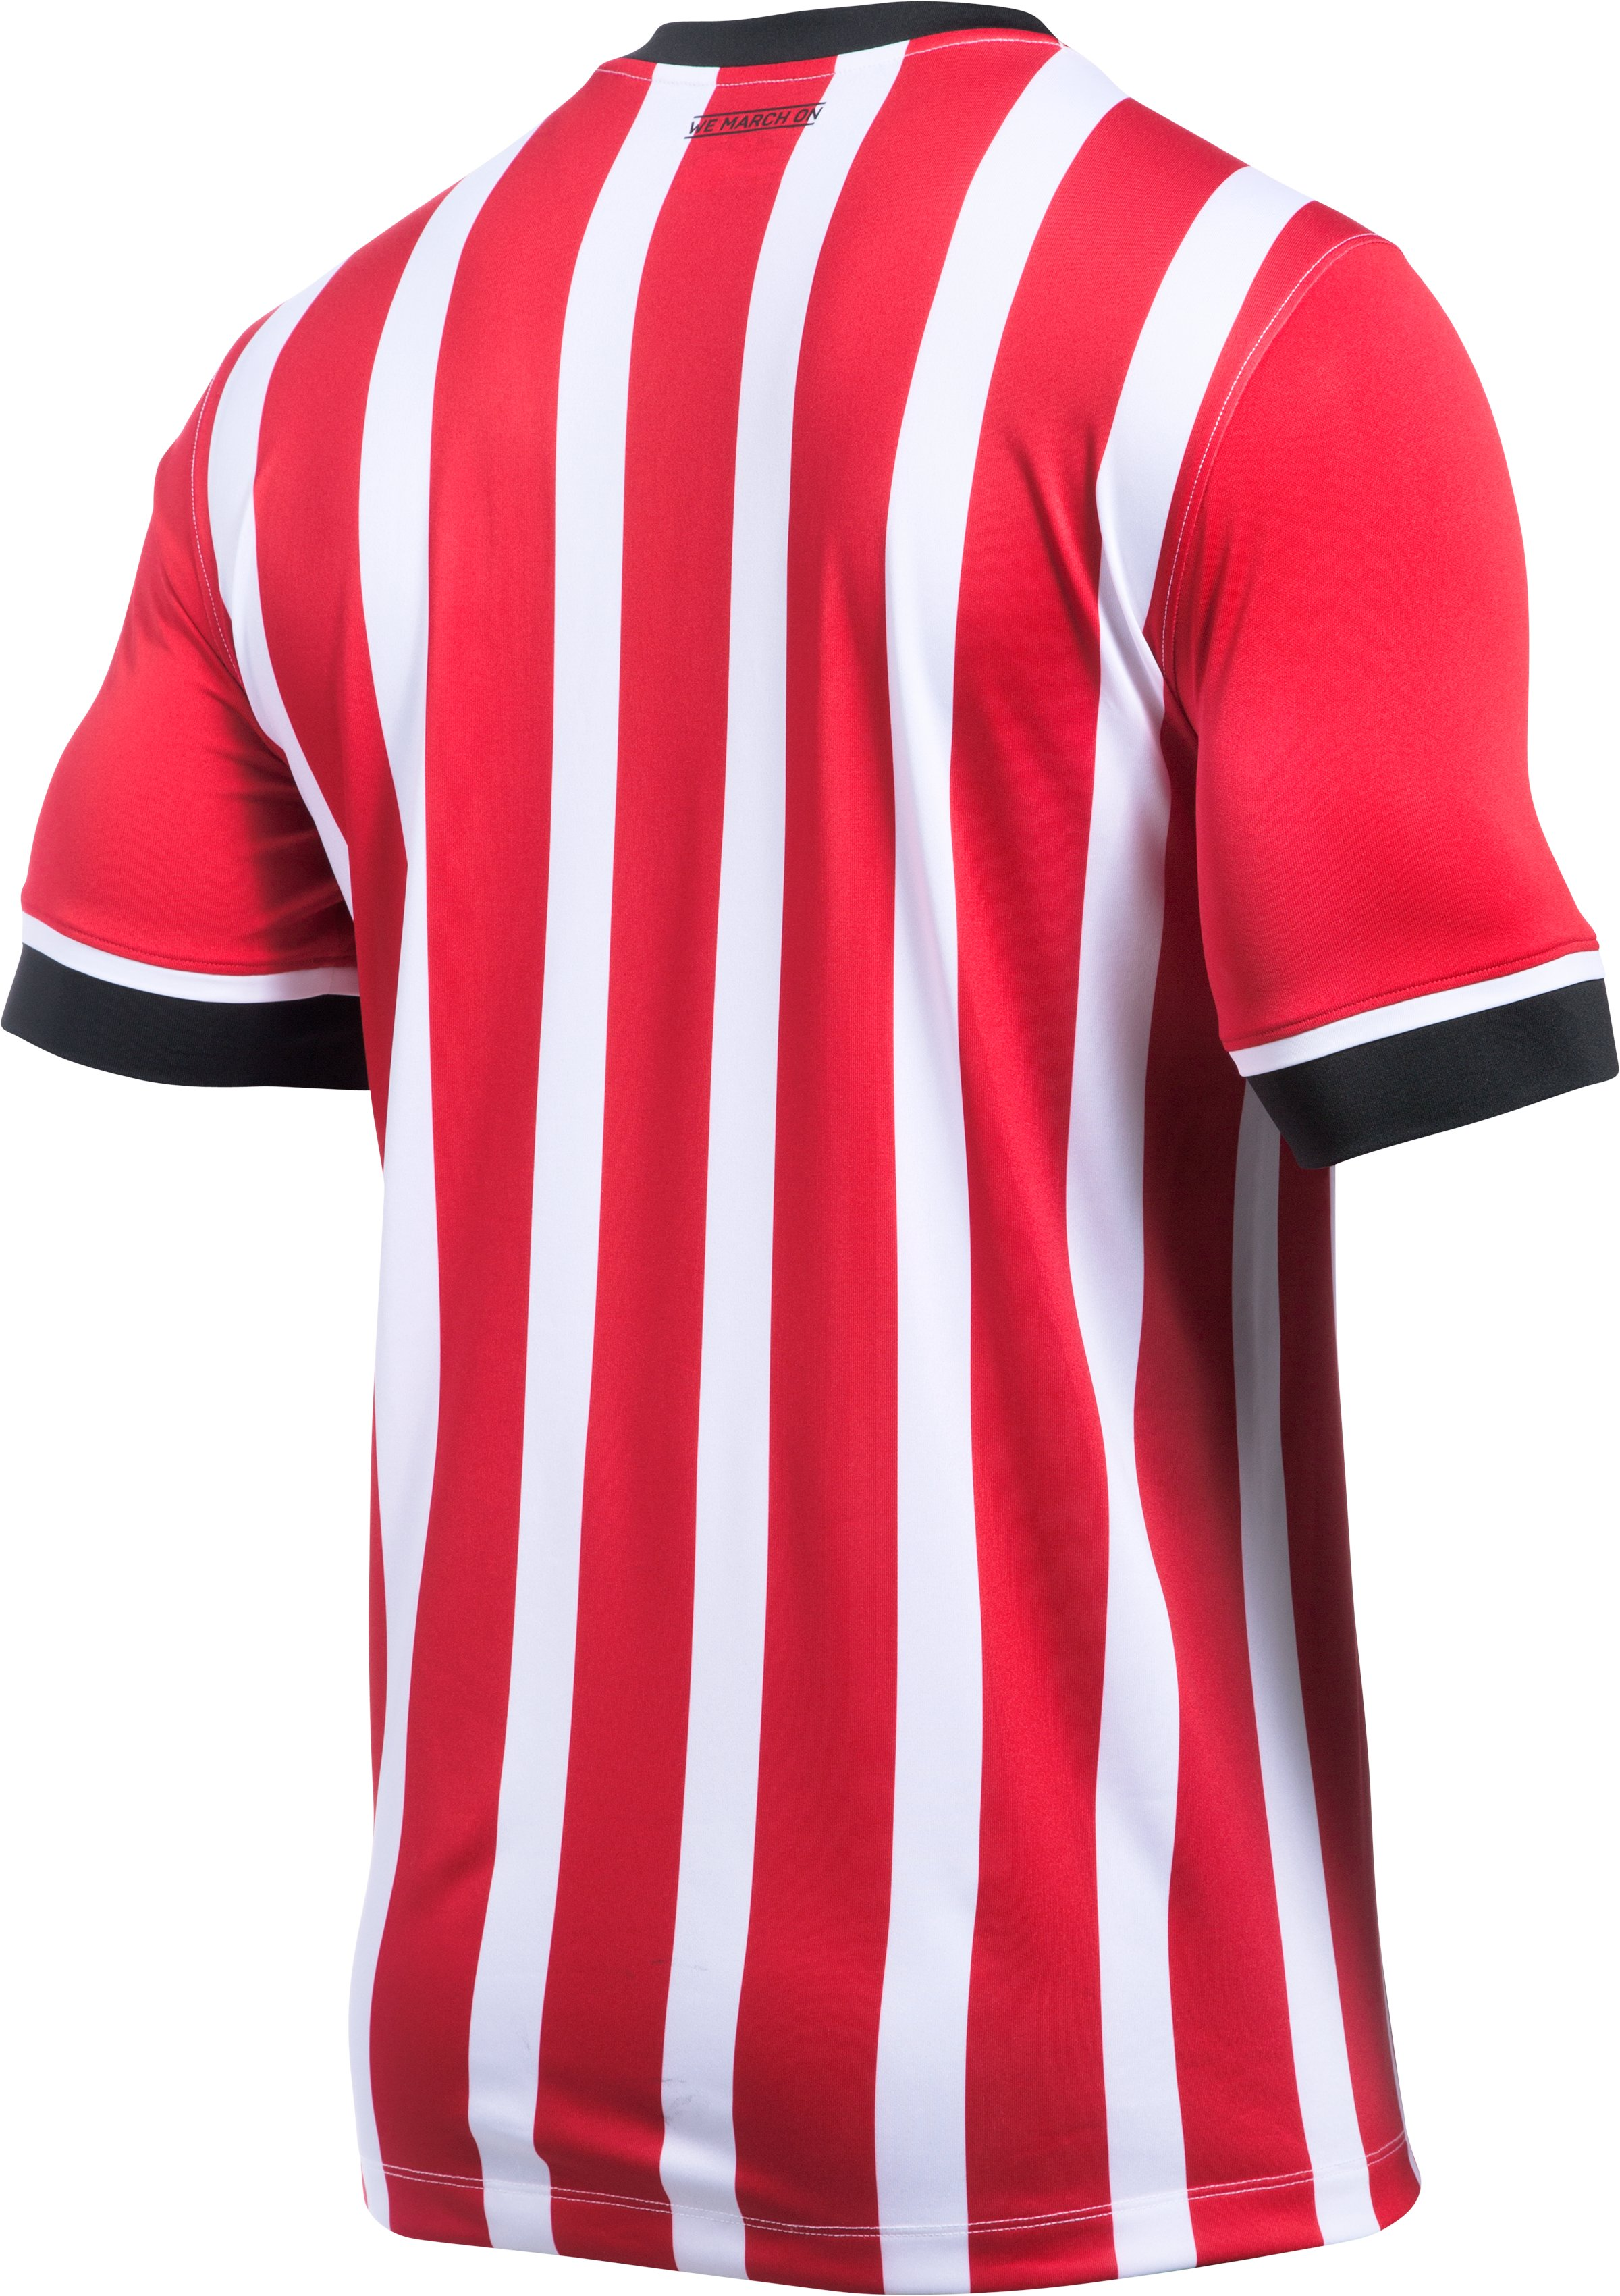 Men's Southampton 16/17 Home Replica Jersey, Red, undefined